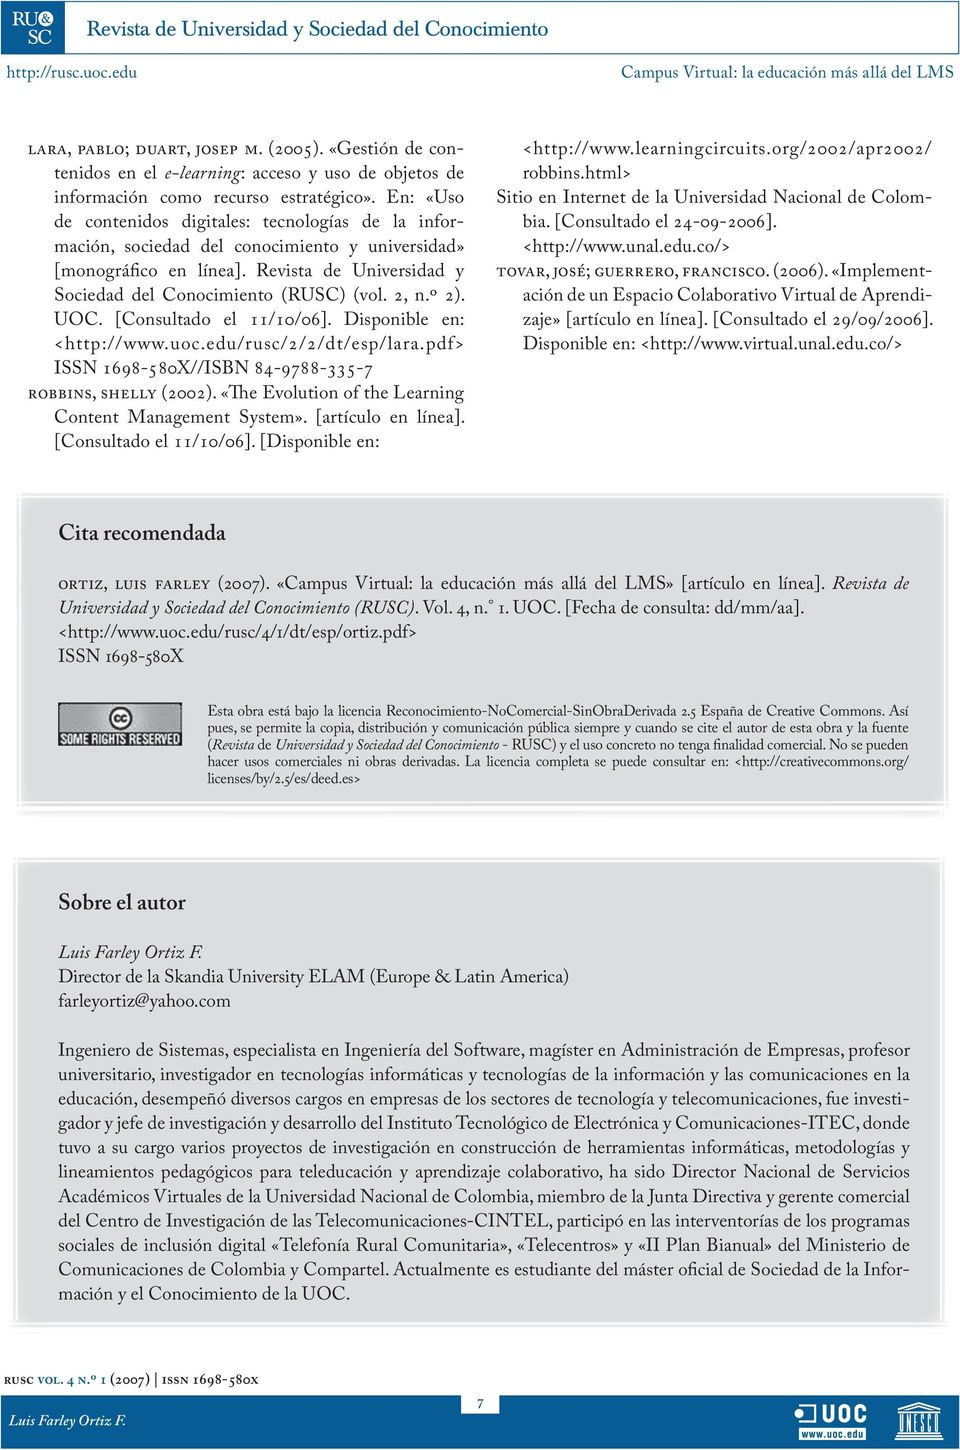 º 2). UOC. [Consultado el 11/10/06]. Disponible en: <http://www.uoc.edu/rusc/2/2/dt/esp/lara.pdf> ISSN 1698-580X//ISBN 84-9788-335-7 robbins, shelly (2002).